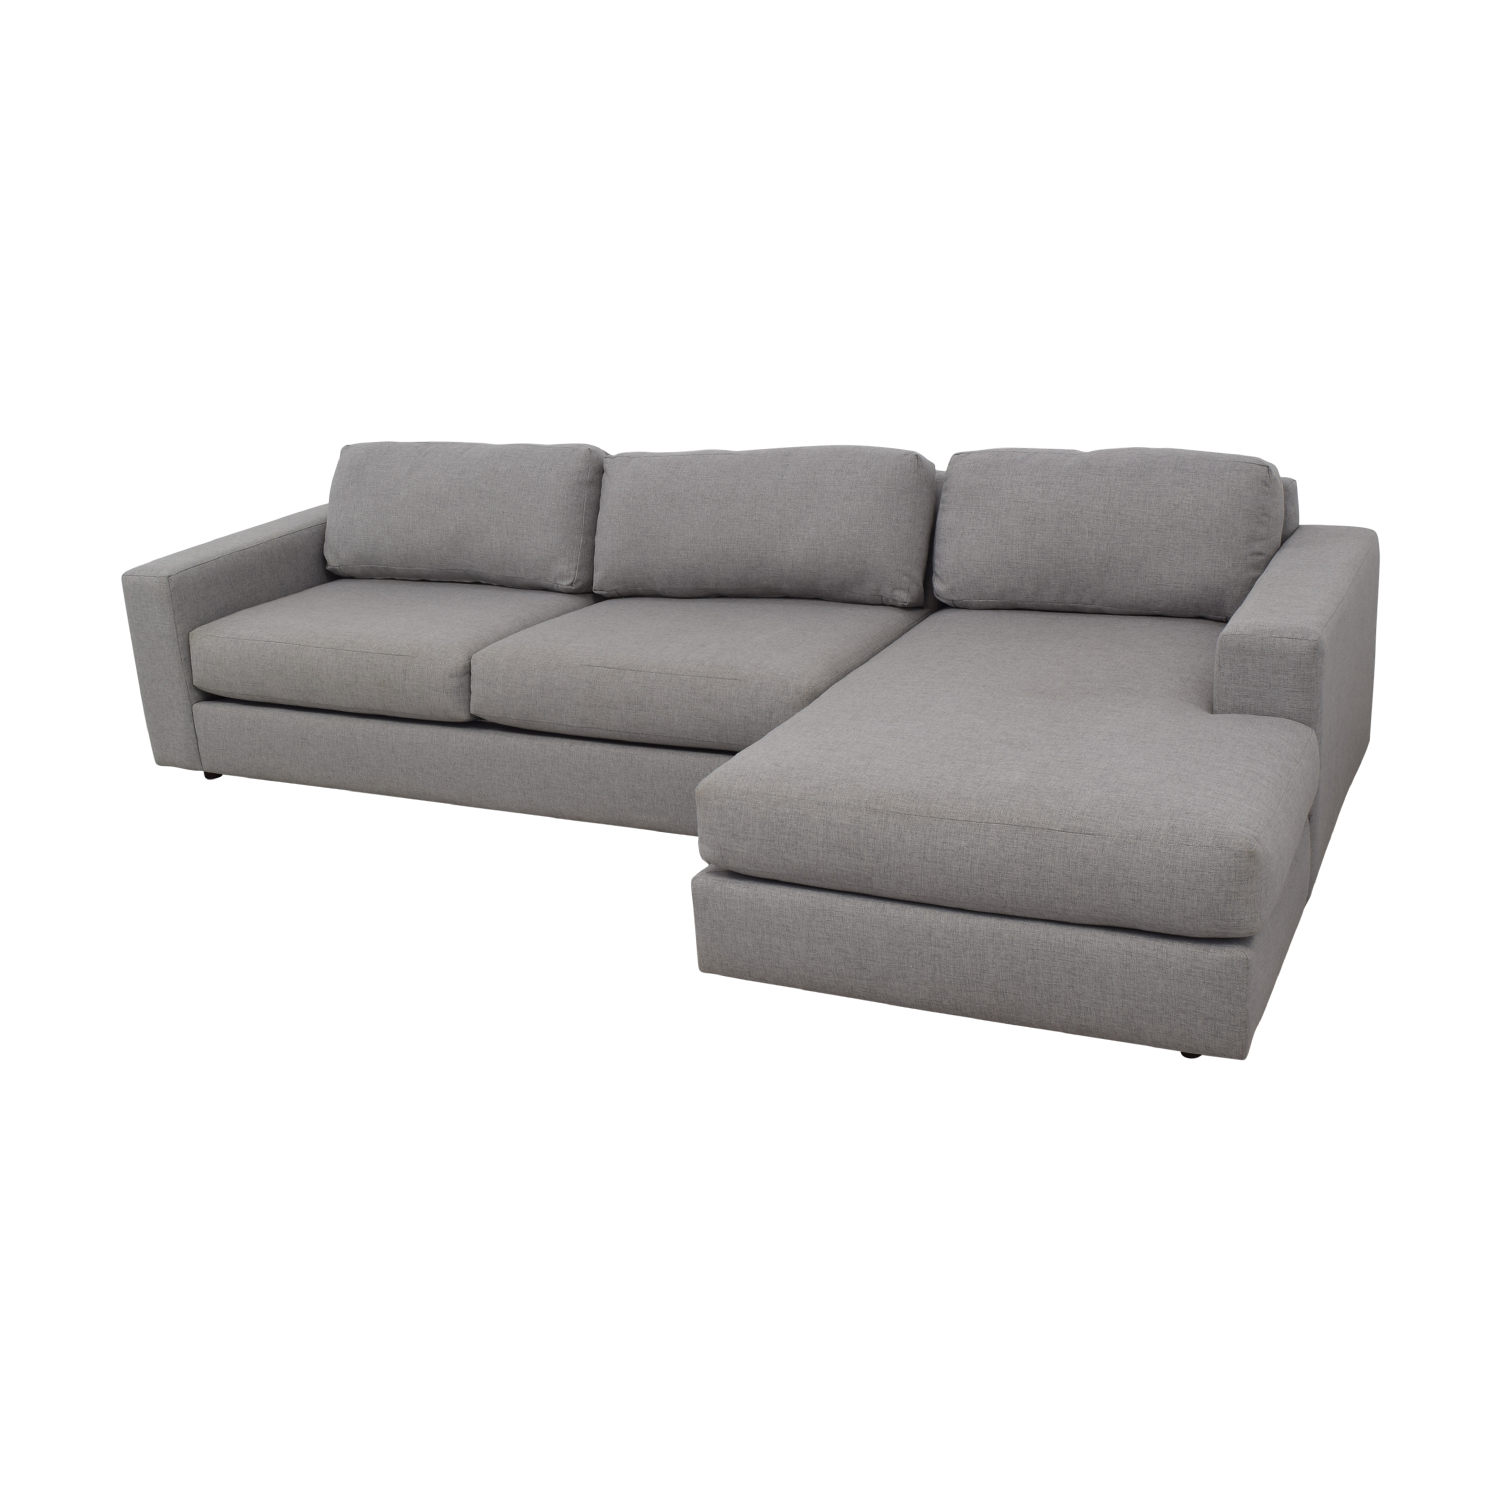 West Elm West Elm Urban Chaise Sectional Sofa second hand